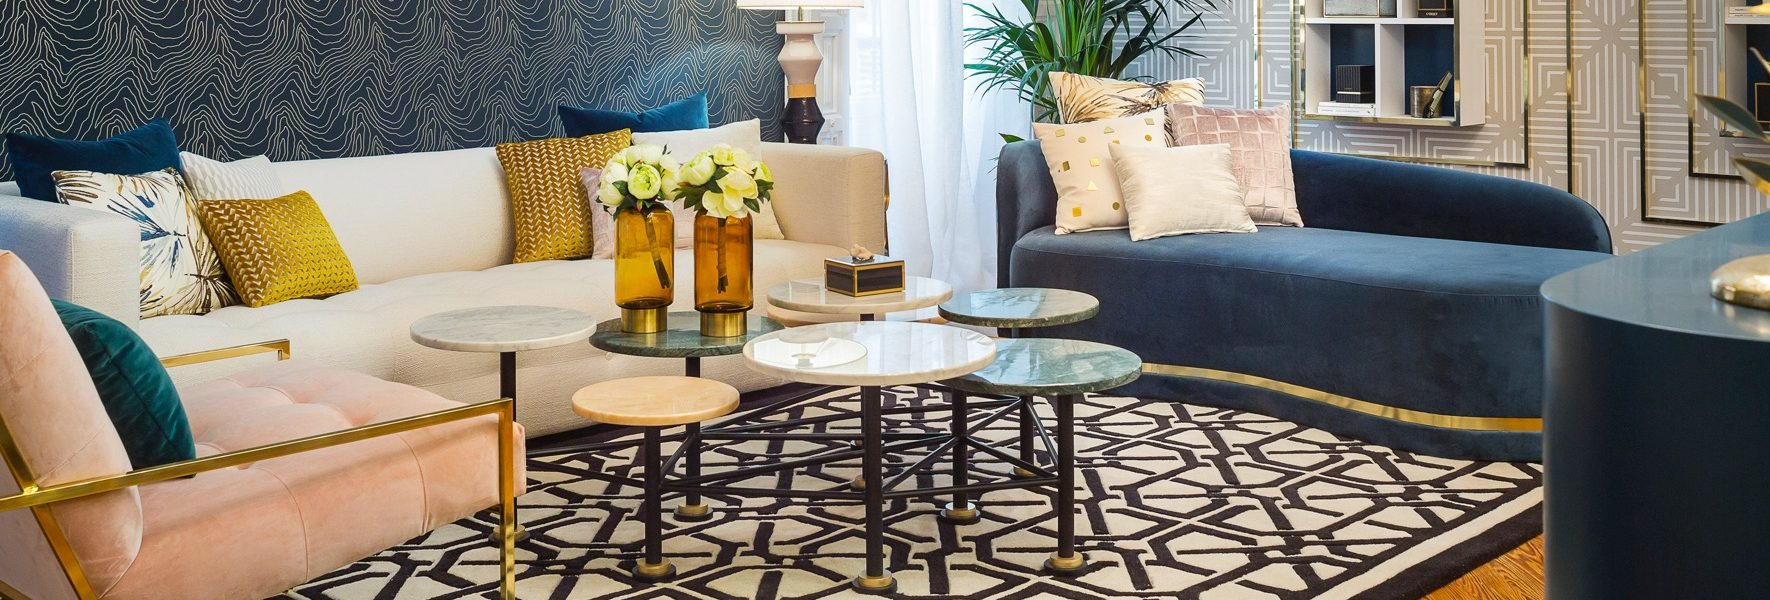 Recorremos Casa Decor para fichar las últimas tendencias en decoración